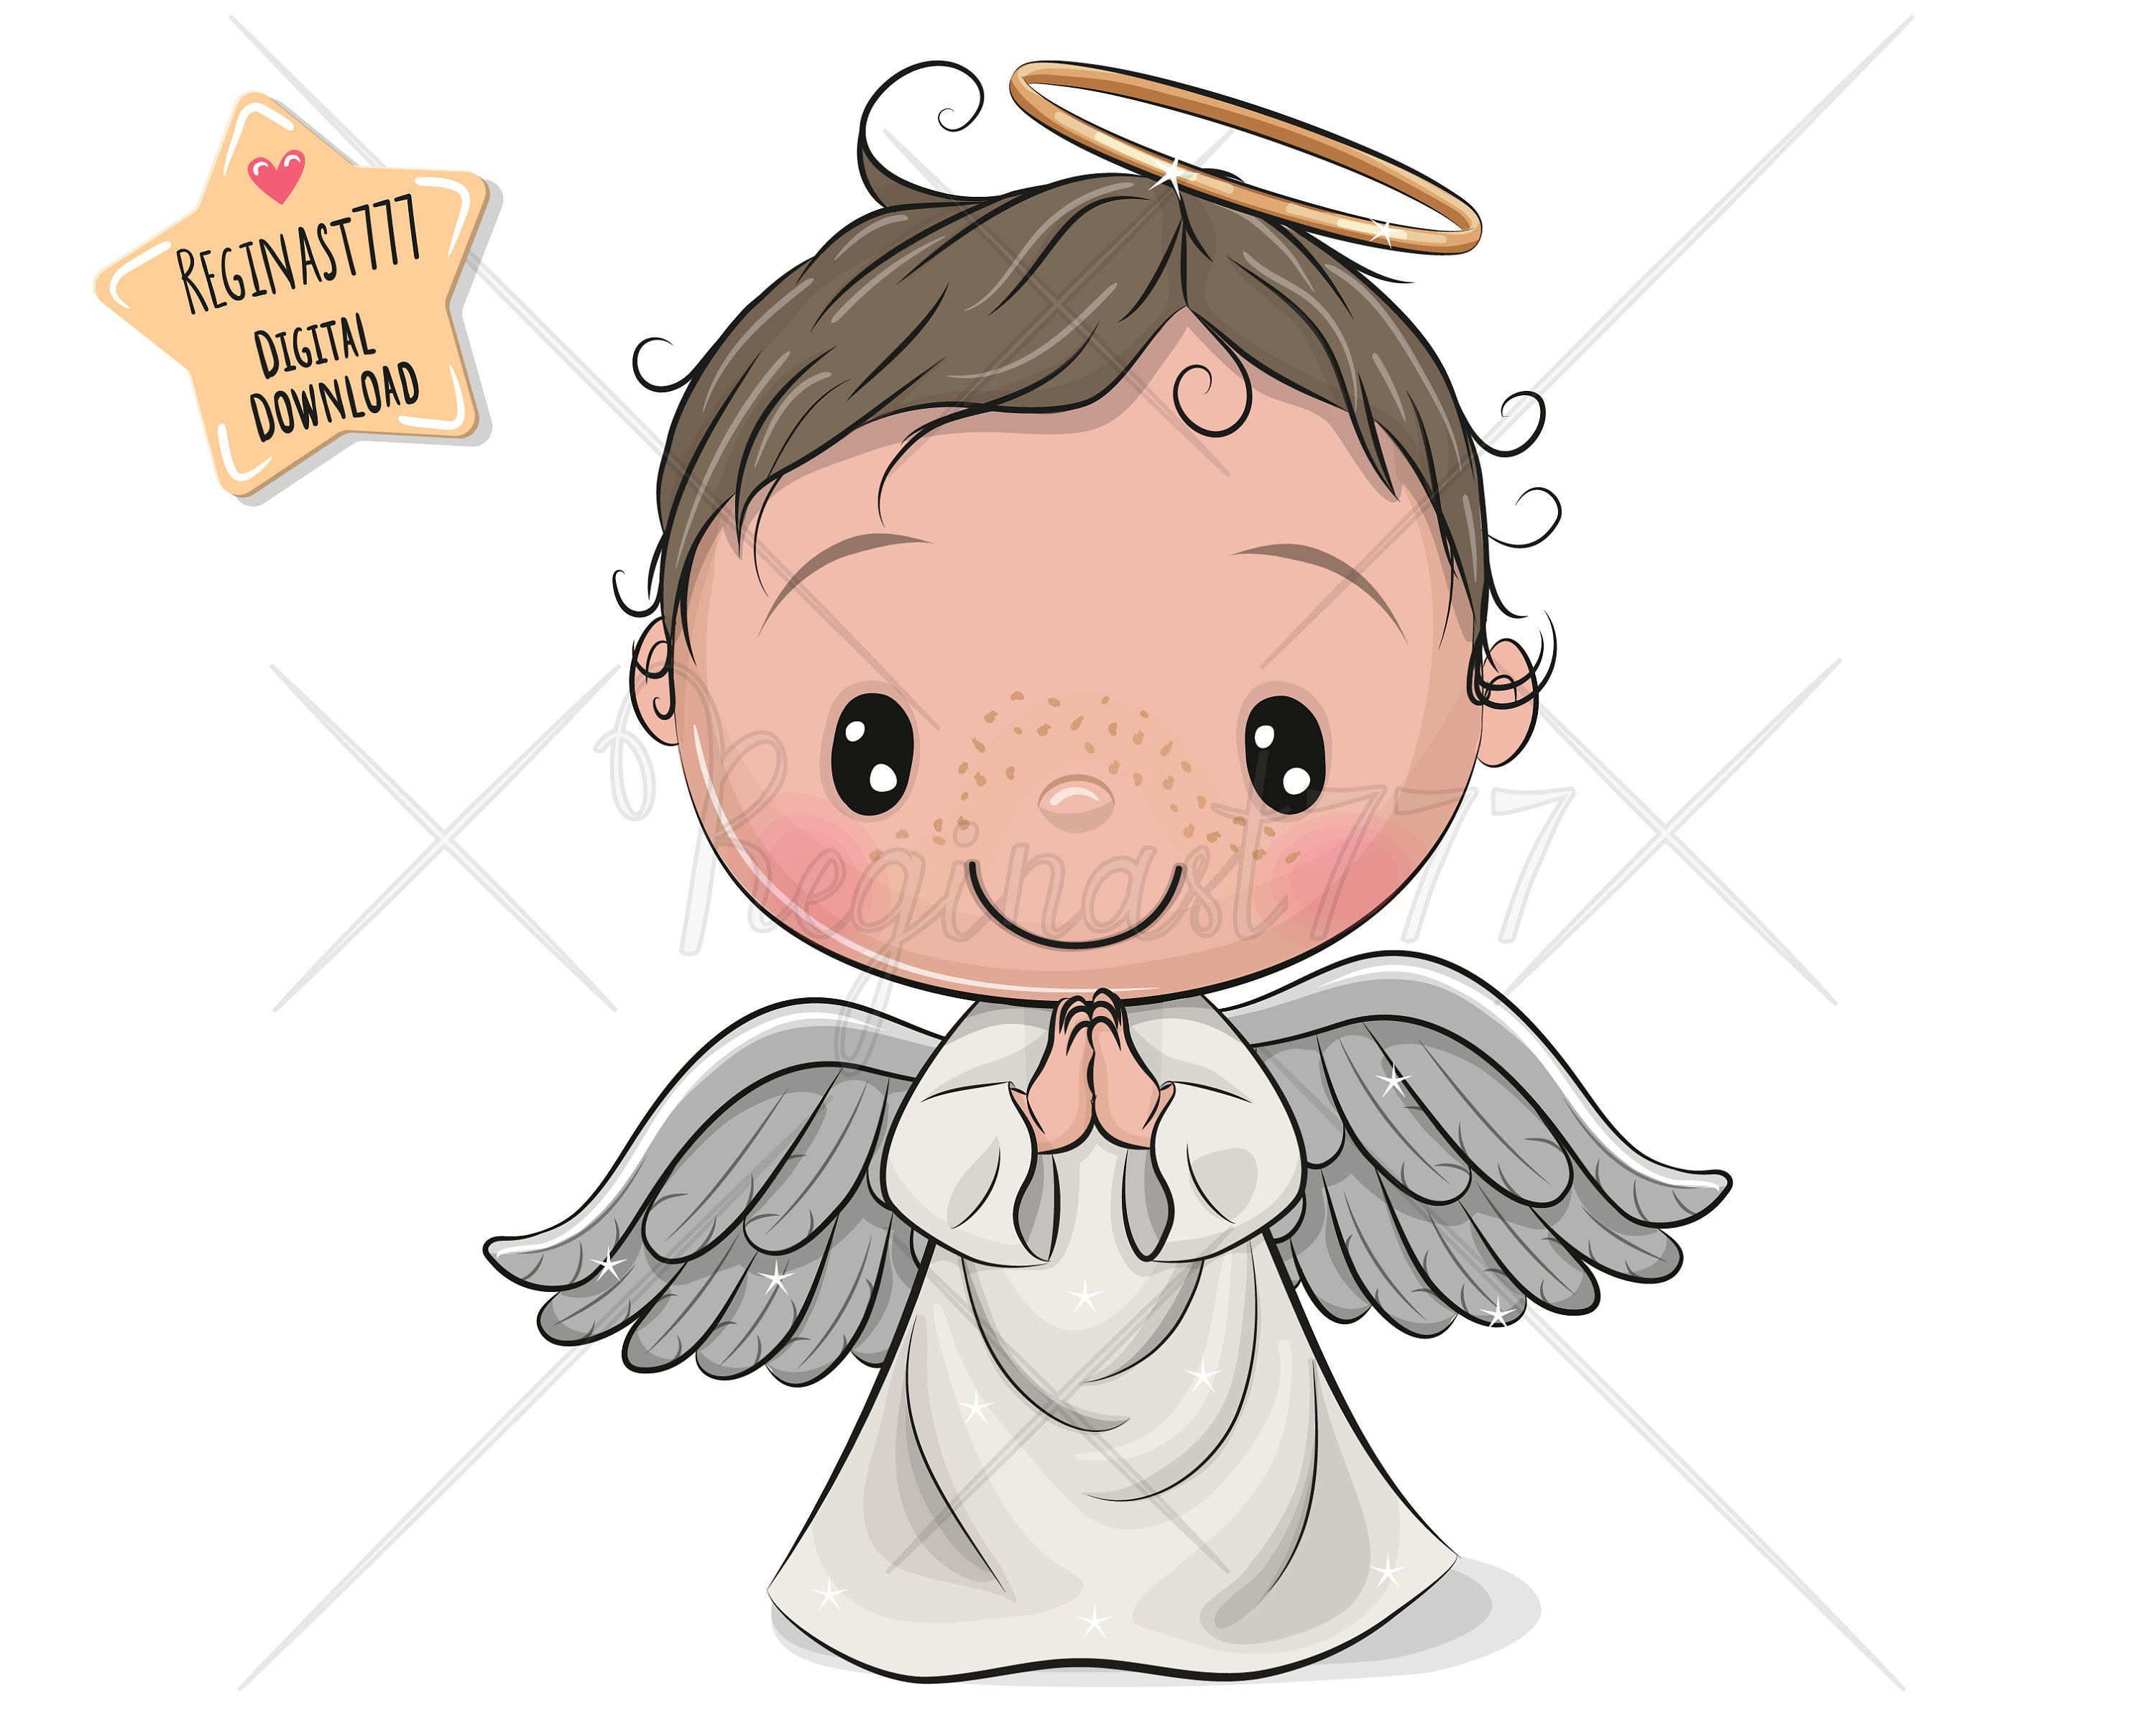 Baby Angel Transparent Image Cute Baby Angel Clipart Png Image With Transparent Background Png Free Png Images Angel Clipart Clip Art Baby Angel